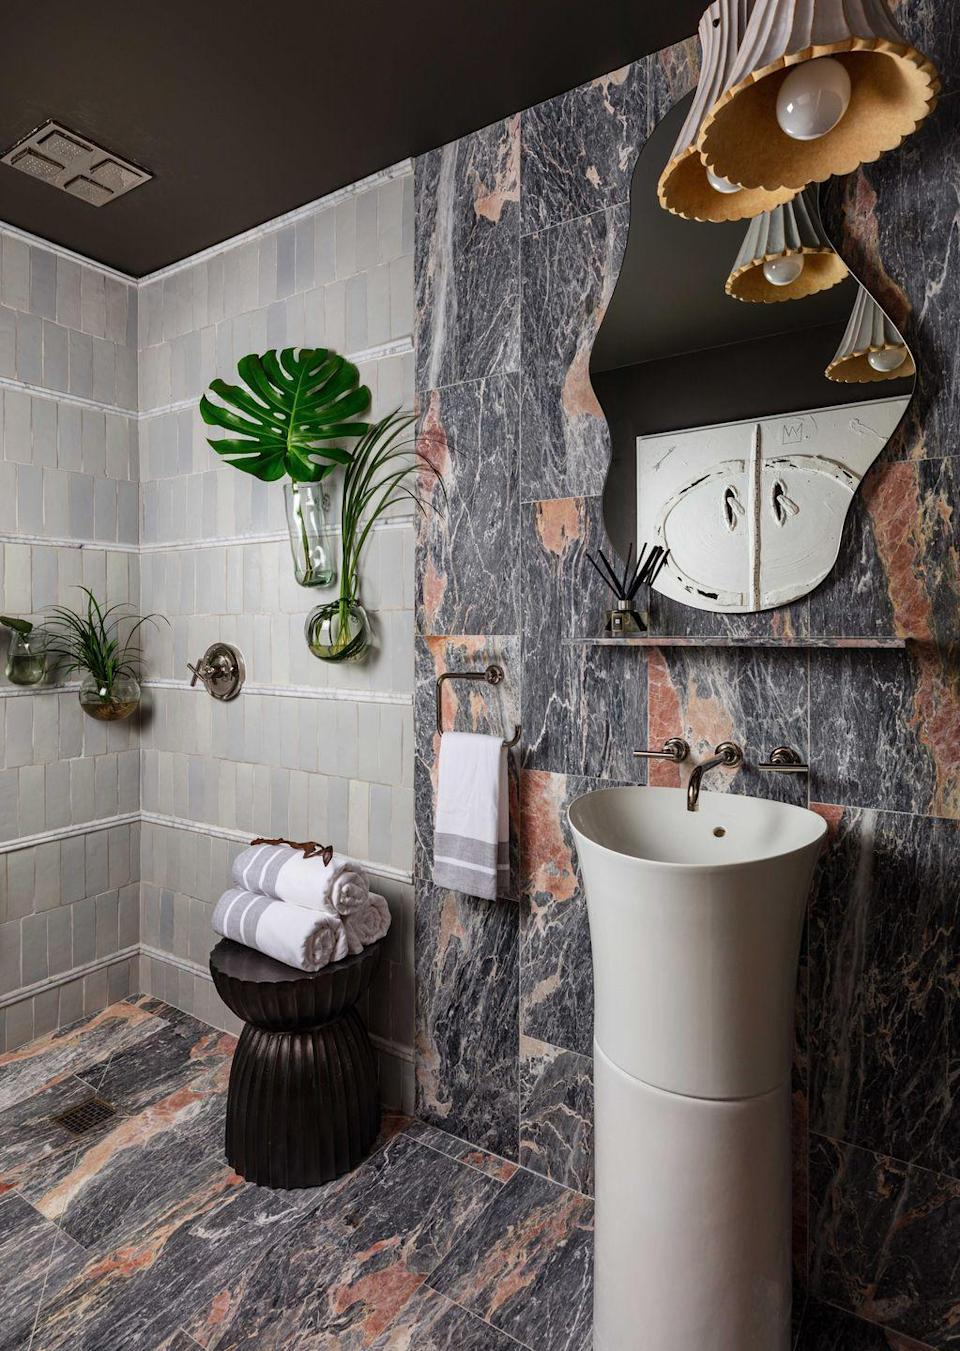 <p>This bathroom by Tavia Forbes and Monet Masters of Atlanta-based Forbes+Masters is the ultimate exercise in thinking outside the lines. Instead of confining materials to certain zones, they pushed the envelope, spreading a dramatic marble from the floor up to the wall in one half of the space and a soft, sage terra cotta on the other. Polished nickel Kohler fixtures add shine, while <strong>wall-hung vases holding tropical greenery give a spa-like feel. </strong></p>